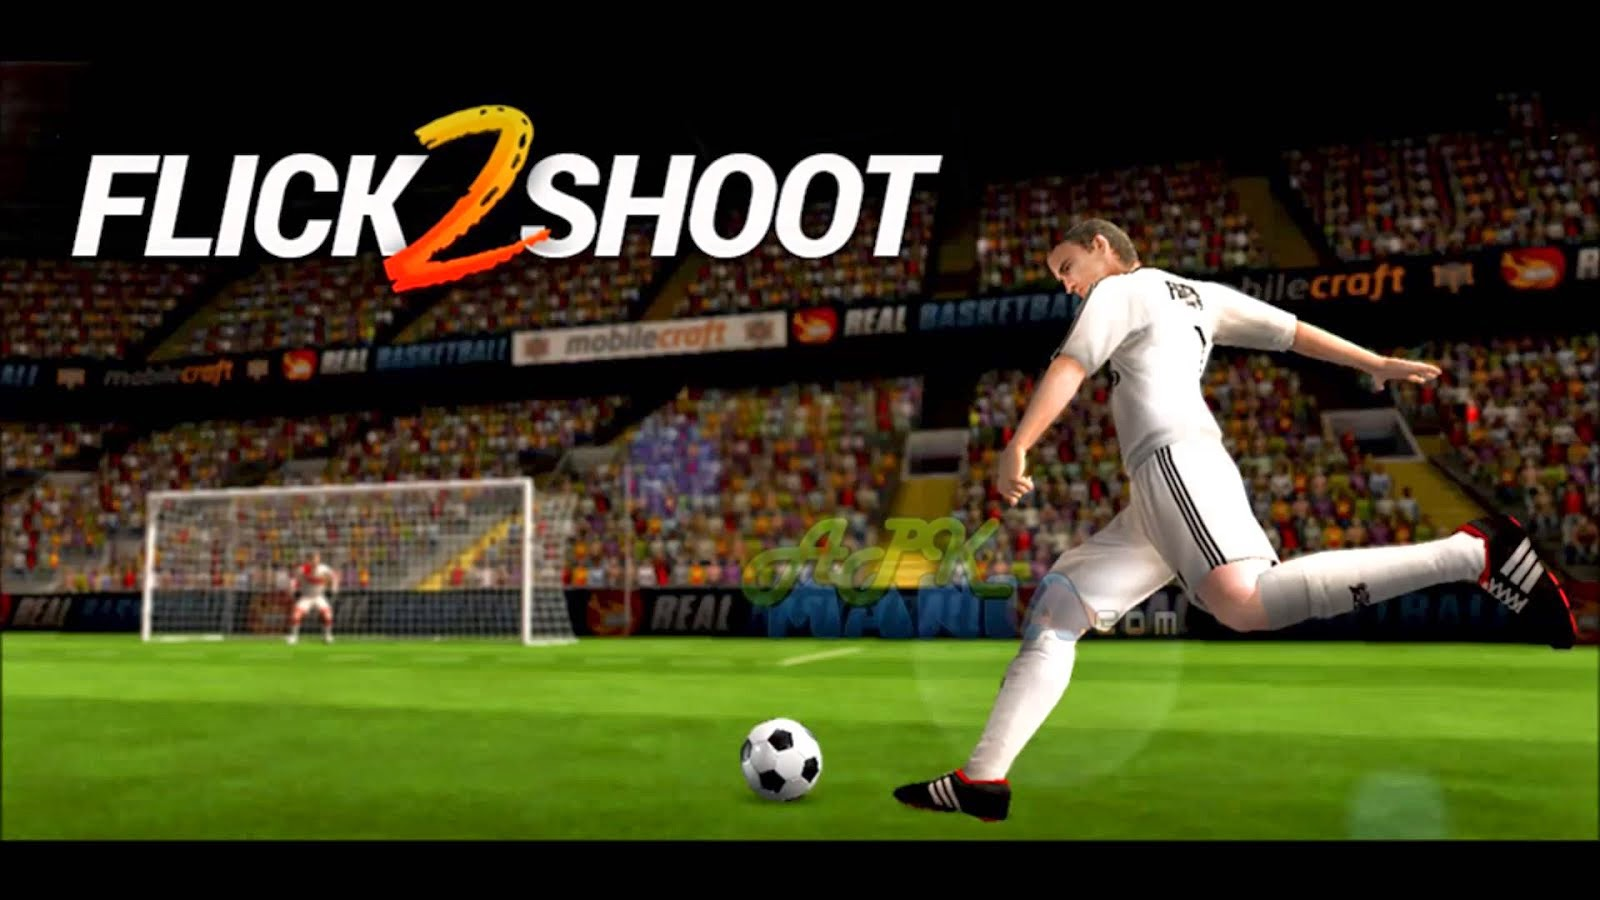 Flick shoot 2 - Best soccer games for android